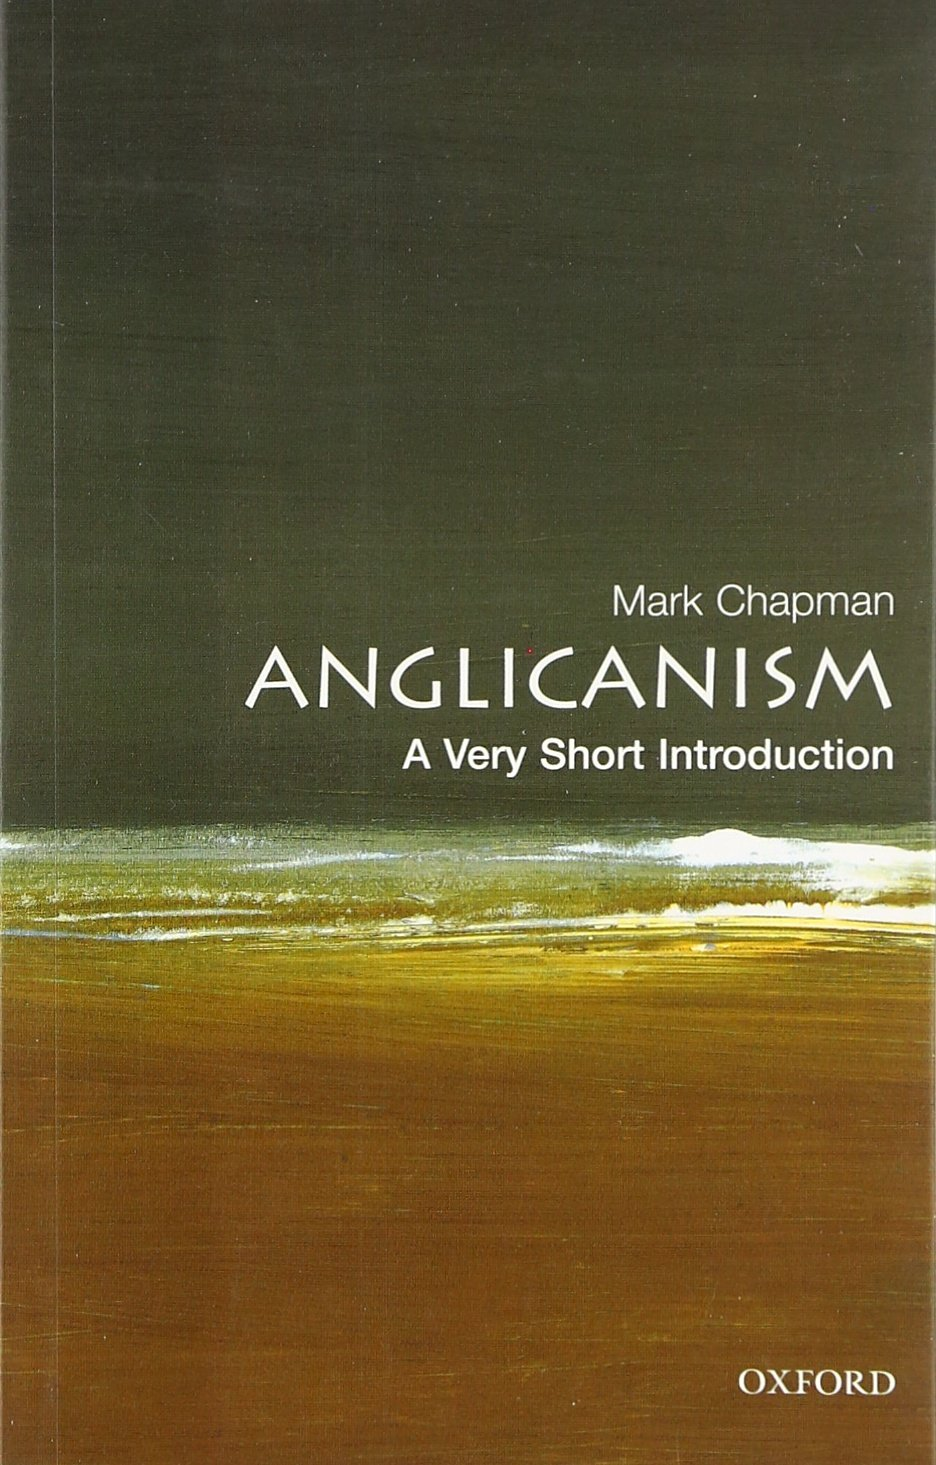 Anglicanism: A Very Short Introduction: Mark Chapman: 9780192806932:  Amazon.com: Books